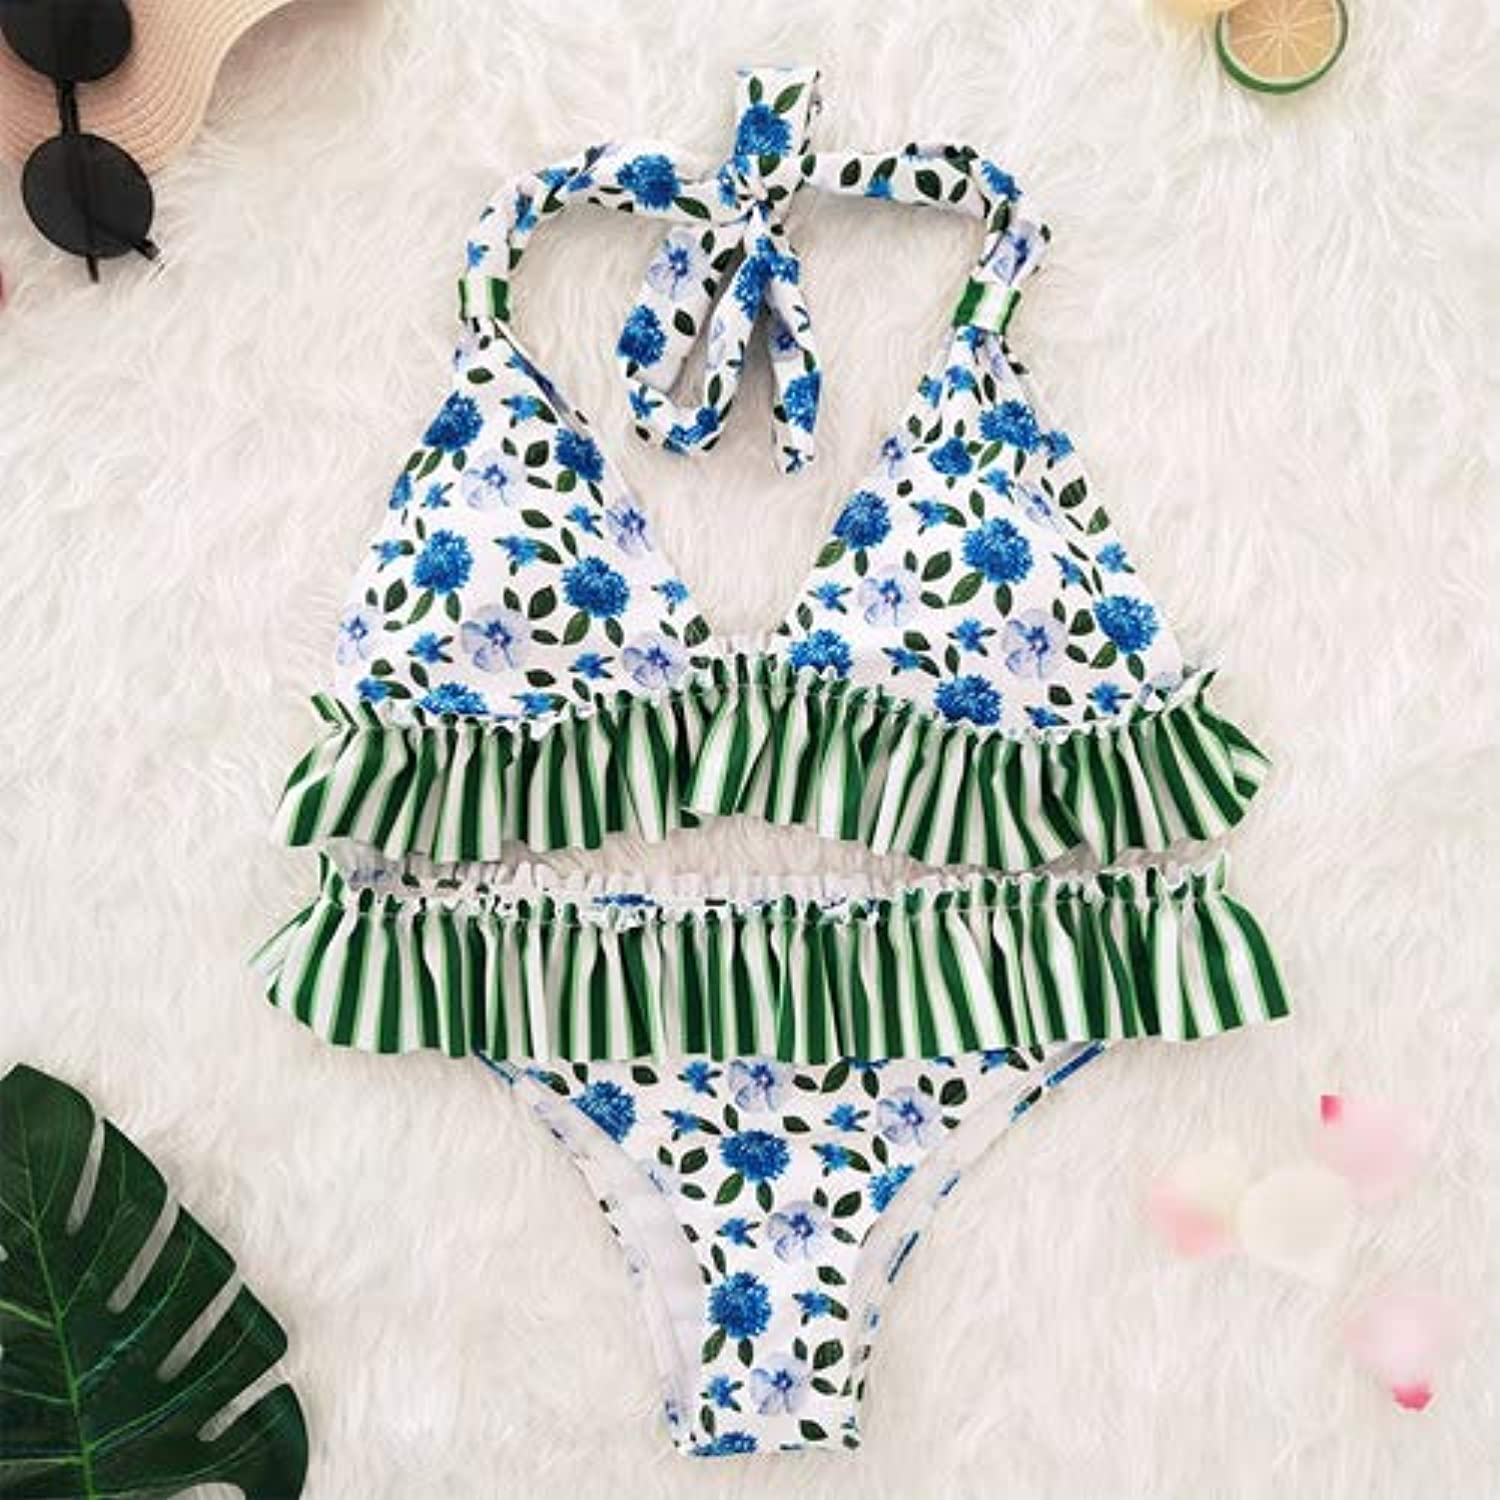 1e239740a42 VIEUNSTA Push up Floral Print Bikini Swimsuit Women Halter Low Waist ...